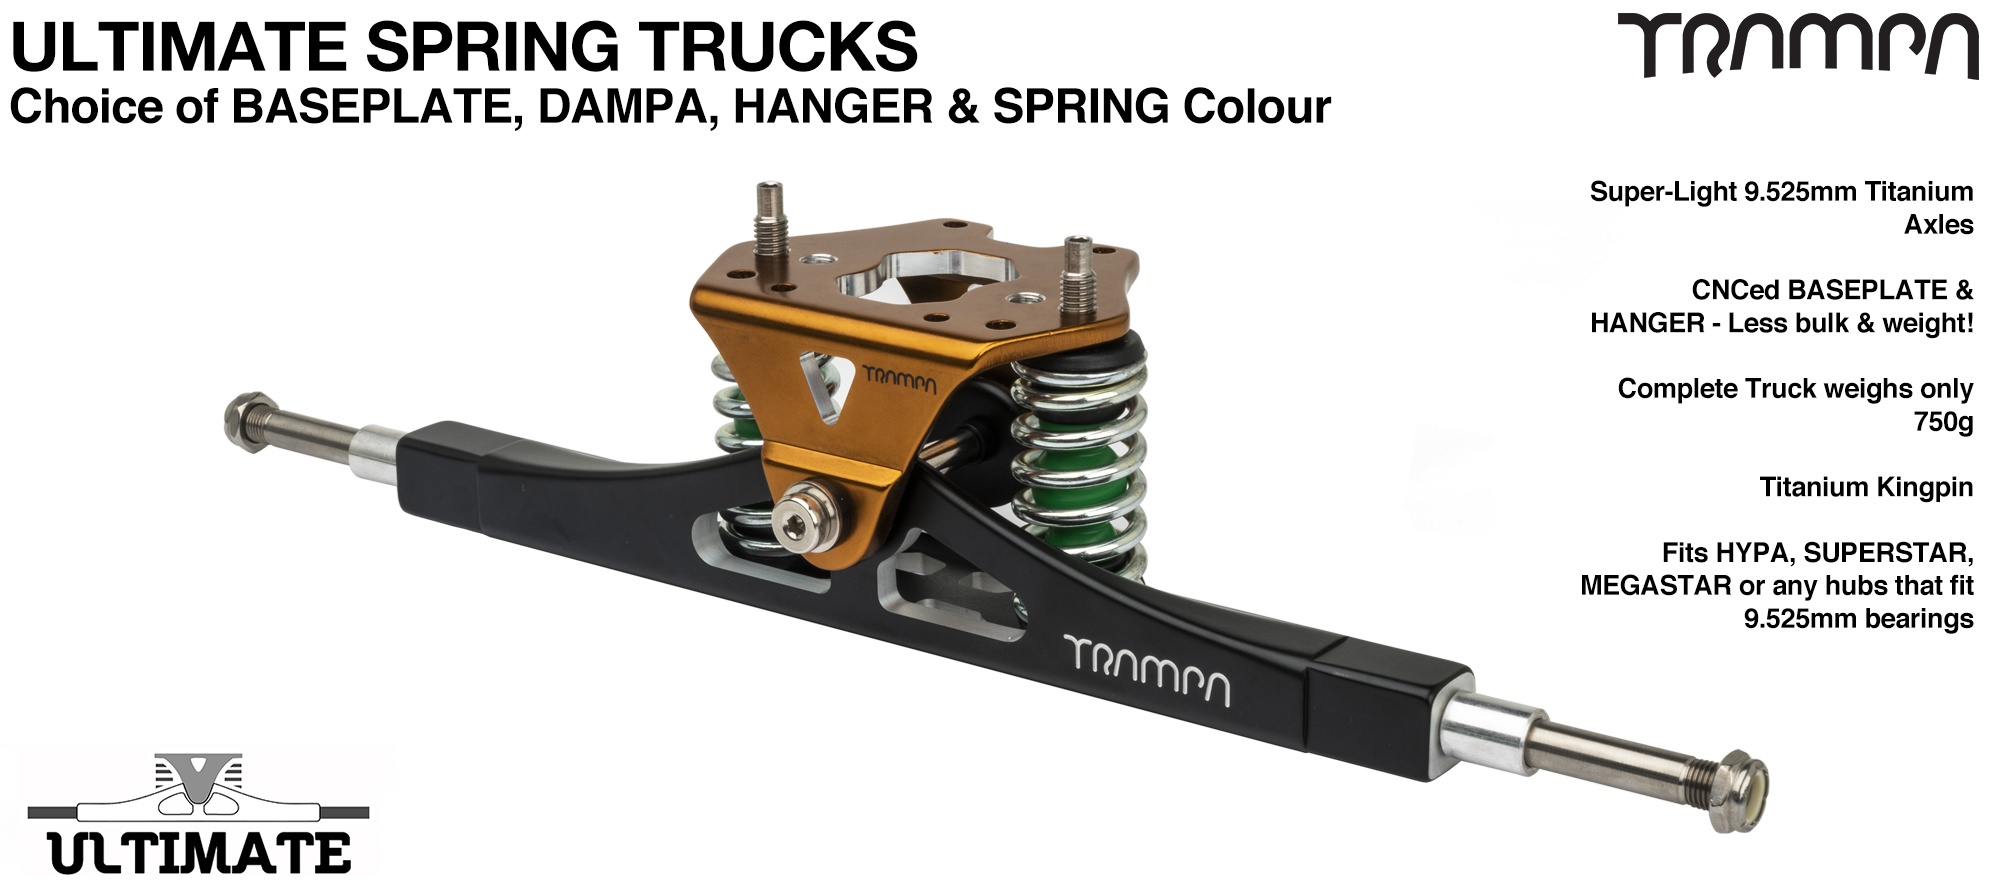 ULTIMATE ATB TRUCK - WHITE ATB Hanger with TITANIUM Axles & Kingpin & BRONZE Baseplate